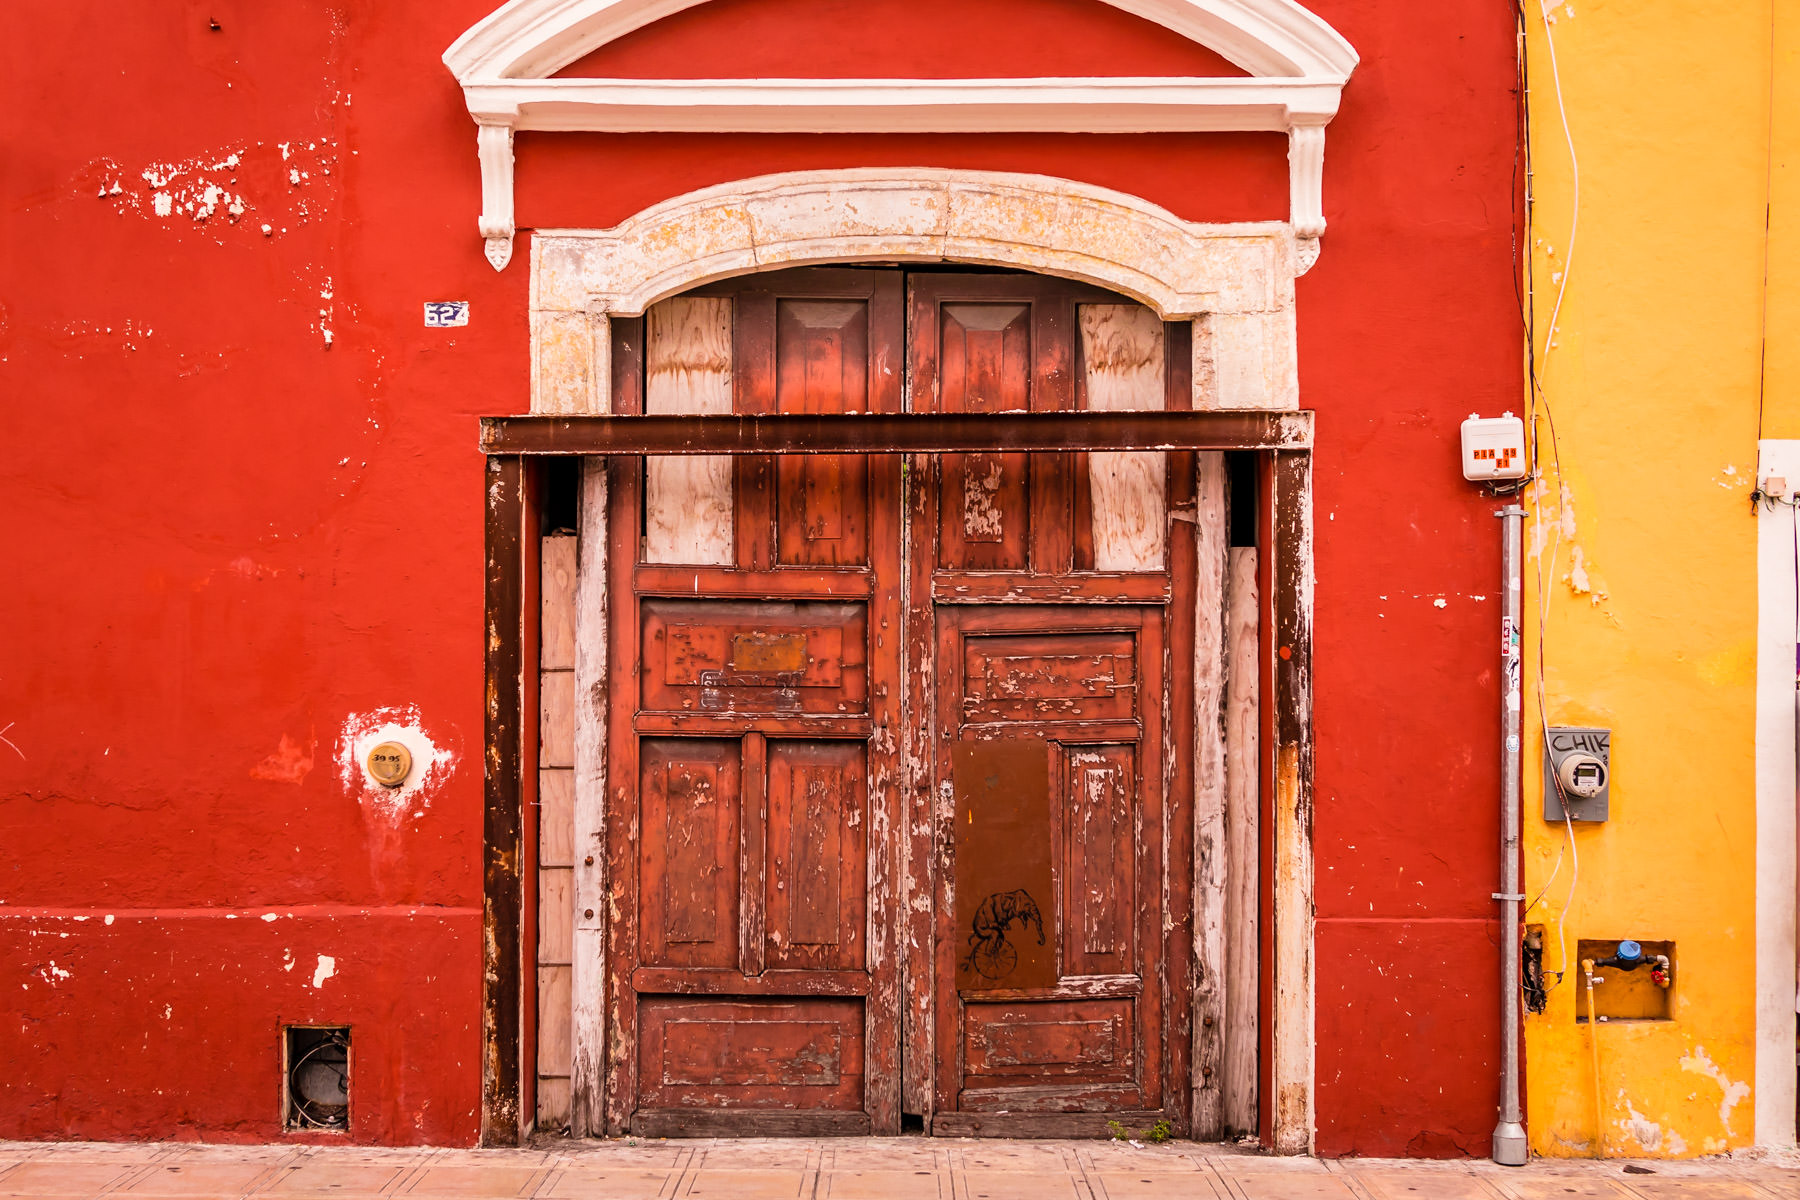 An aged door on a brightly-colored building in Mérida, Yucatán, Mexico.